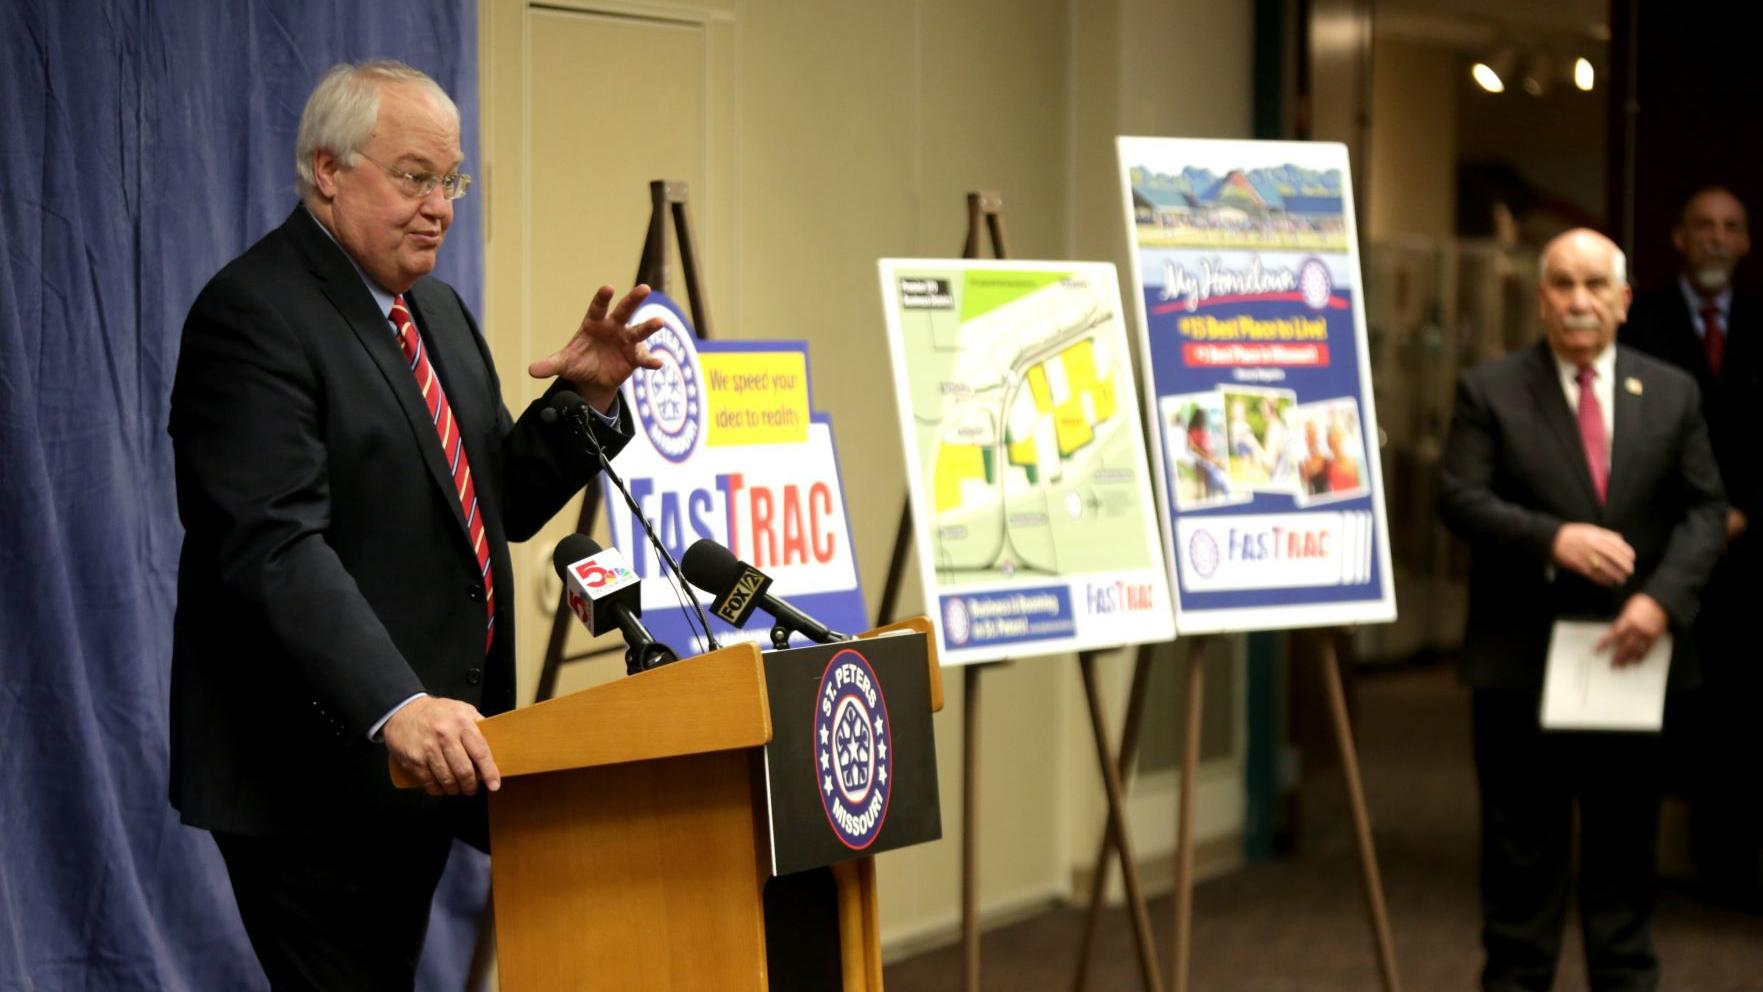 Nicklaus: Ehlmann letter could launch a healthy conversation over regional jobs plan